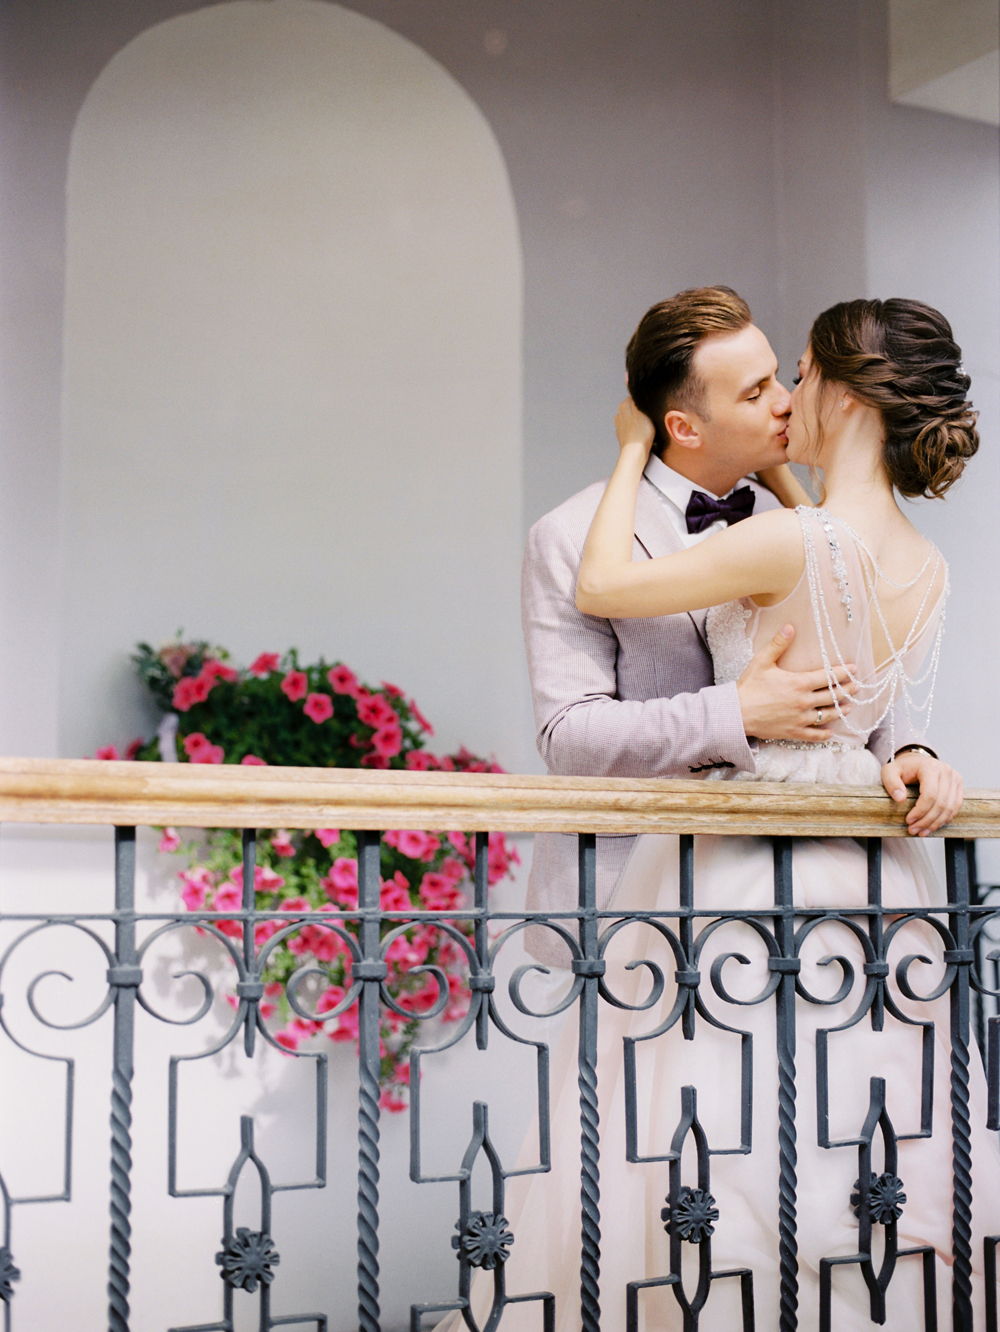 Fine Art Wedding Photography in Ukraine and Europe